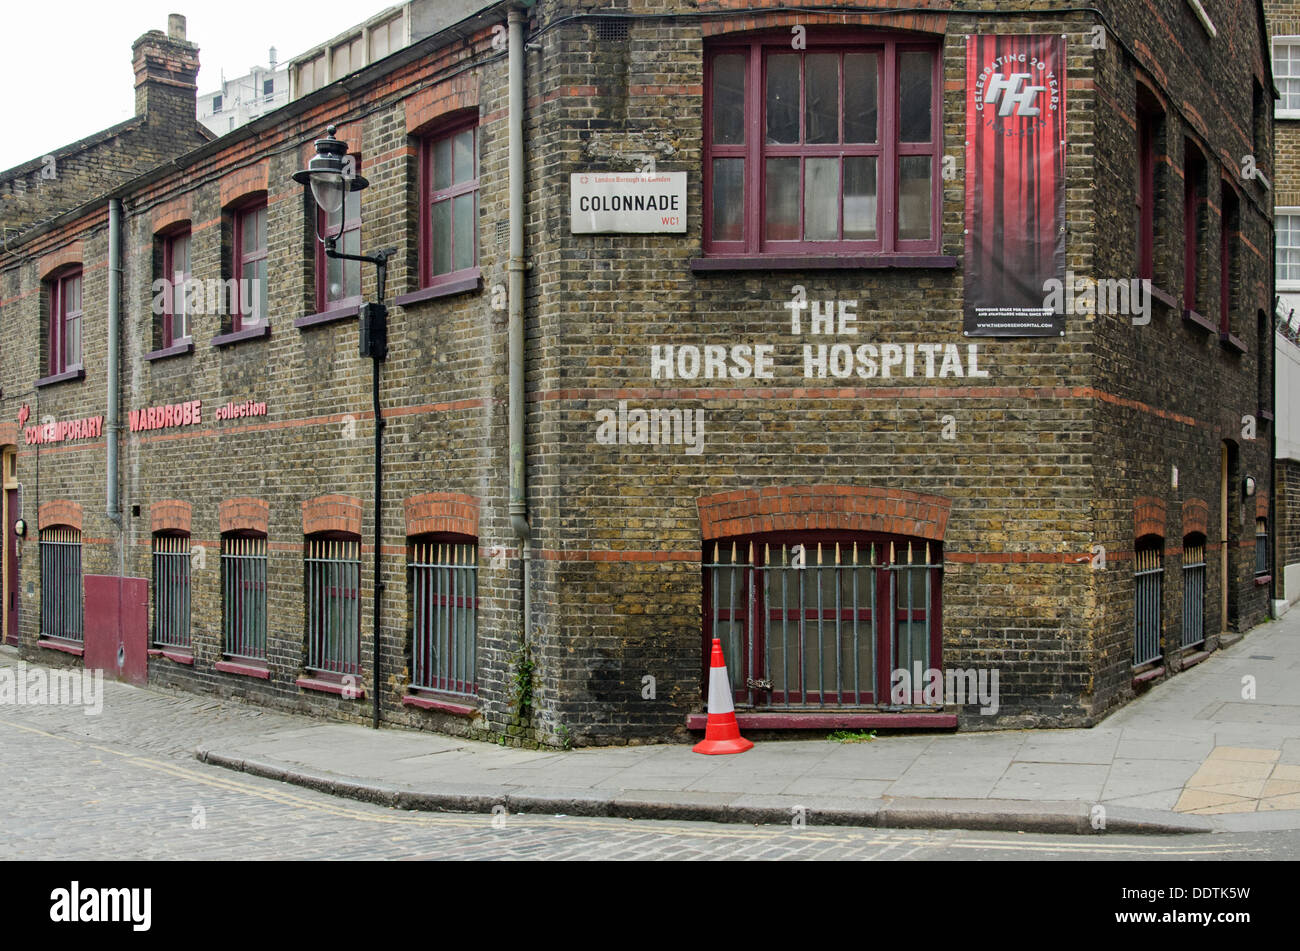 Once home to sick and injured horses, The Horse Hospital is now an avantgarde arts venue located in Bloomsbury, London. - Stock Image